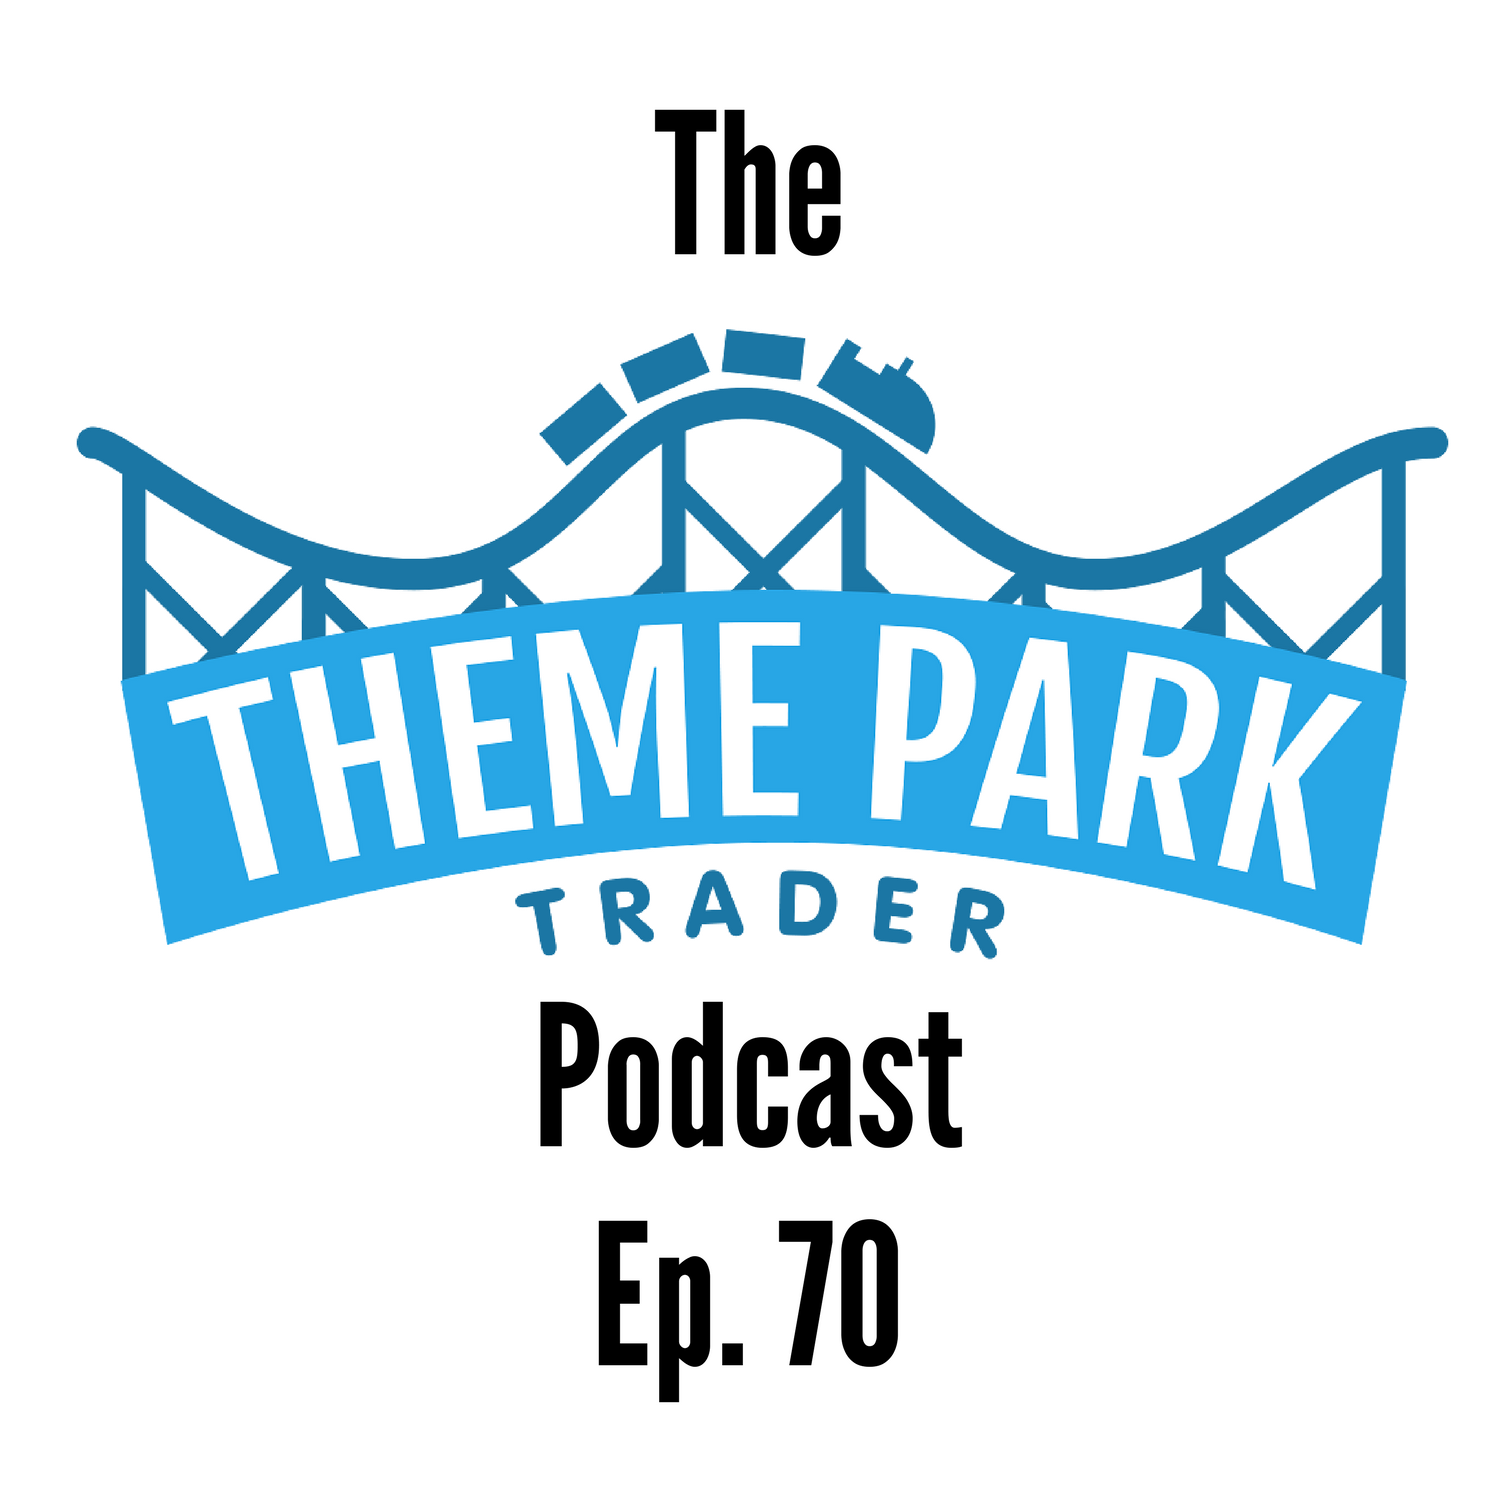 Episode 70 - Craig from Dis After Dark Joins Us to Discuss Upcoming Orlando Trip!